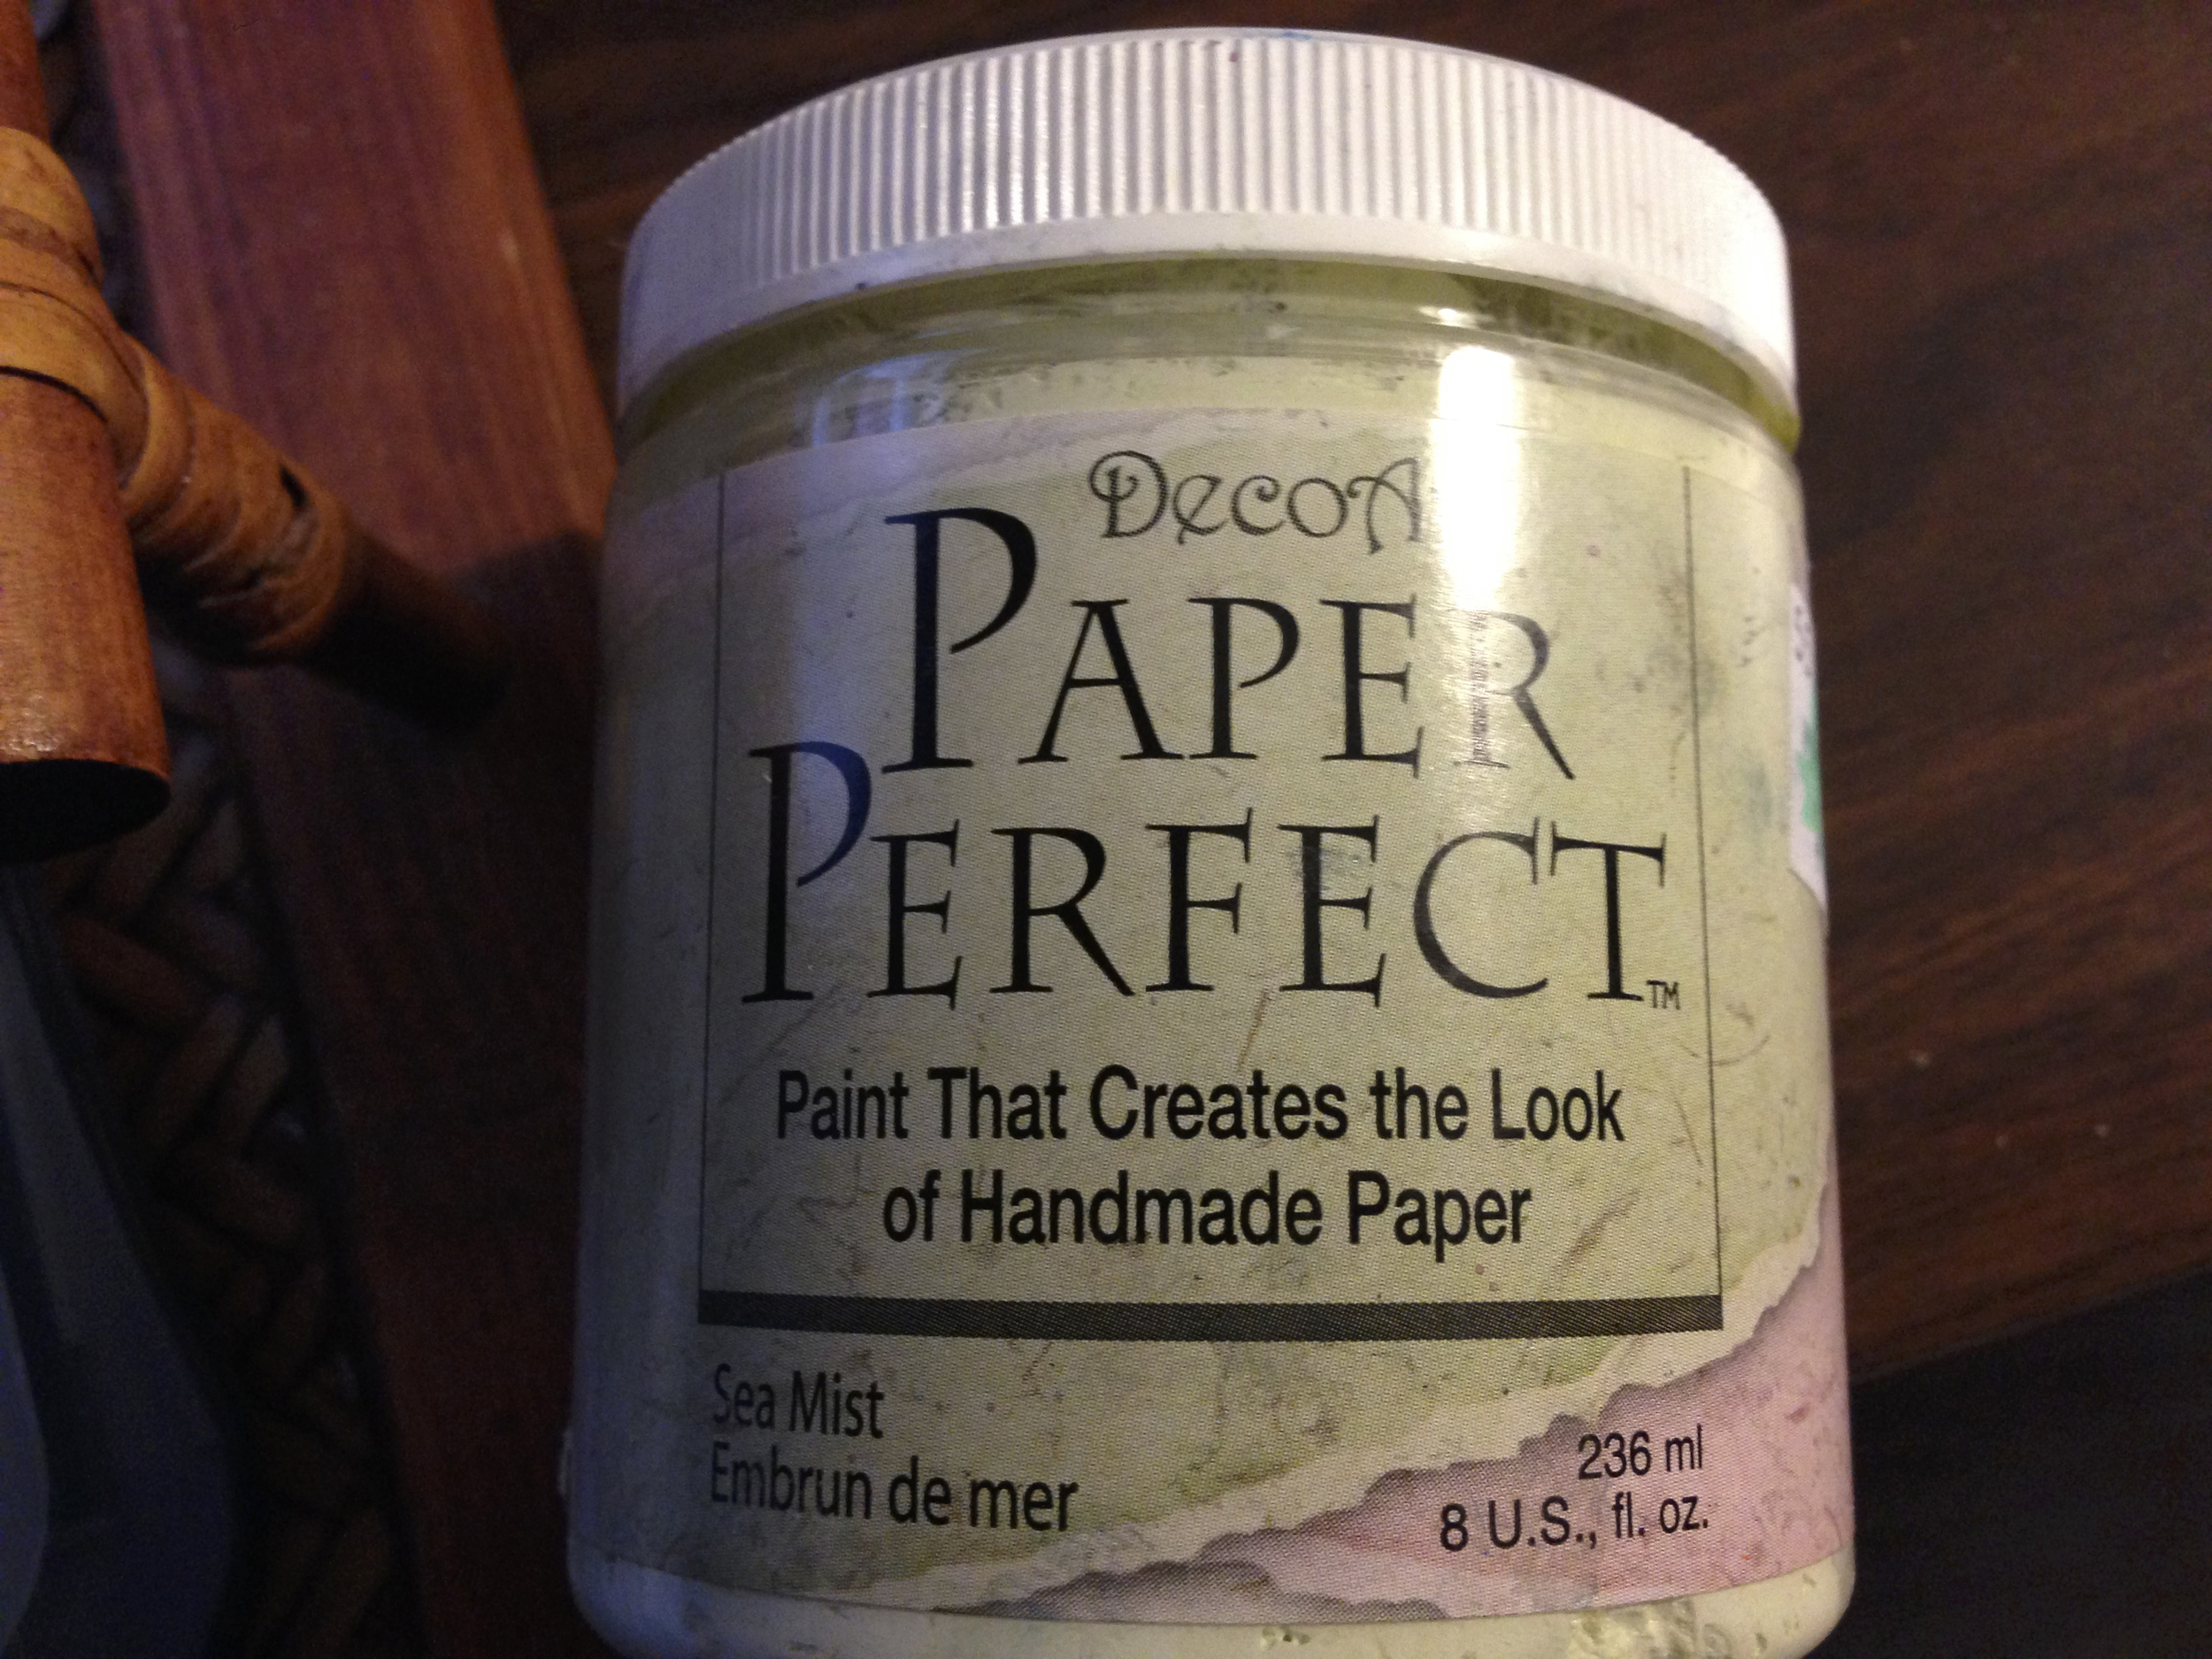 Paper Perfect by DecoArts